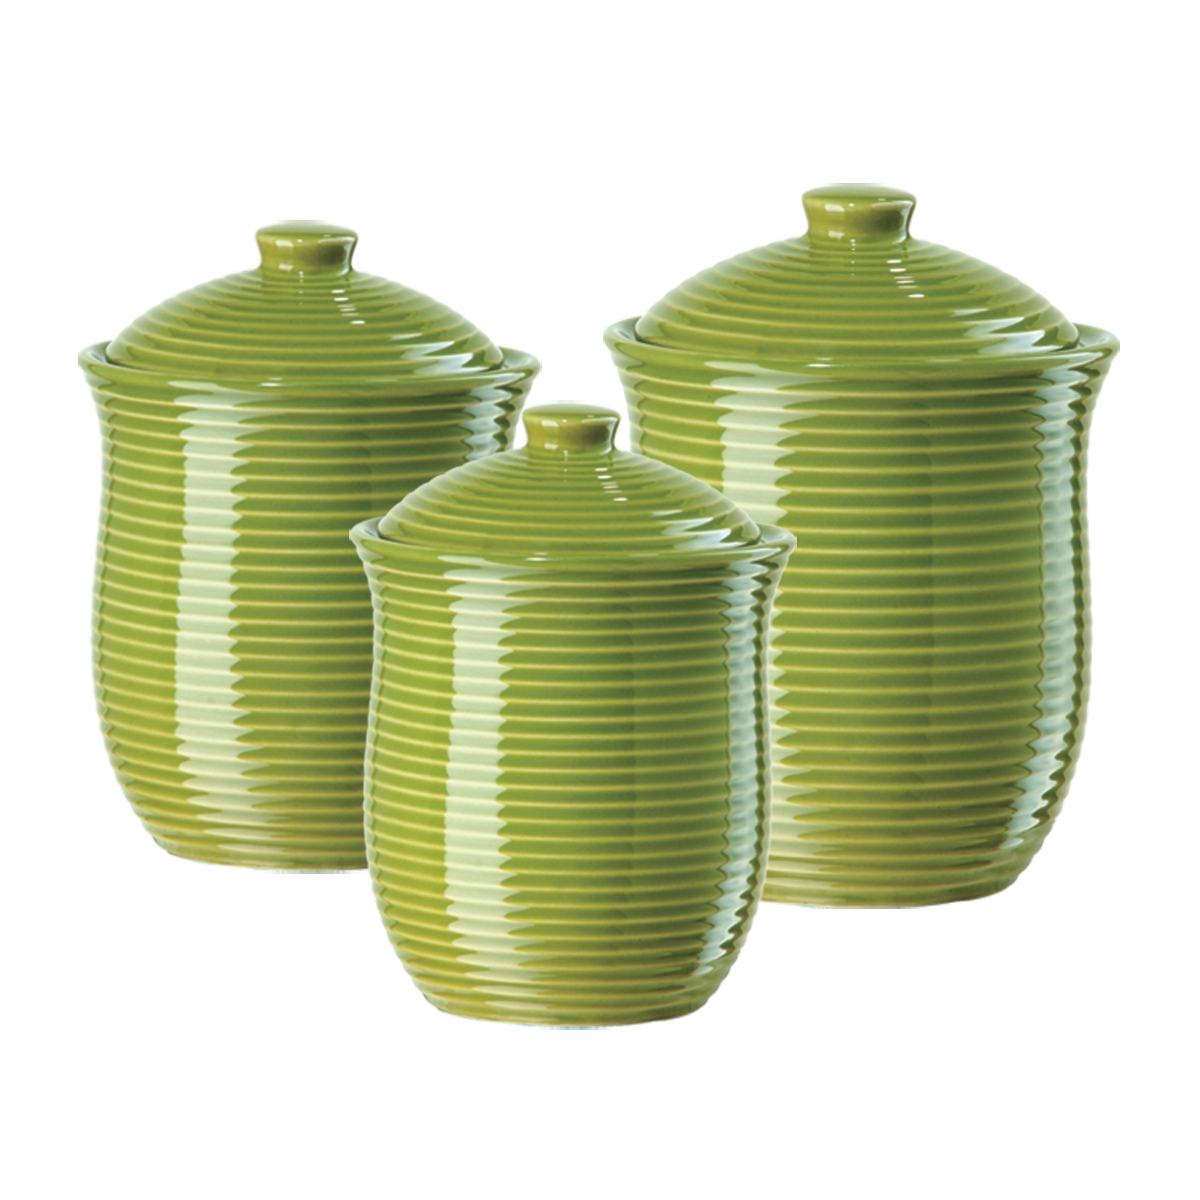 gift amp home today storage canisters for the kitchen kitchen canister set green kitchen jar set metal canister set